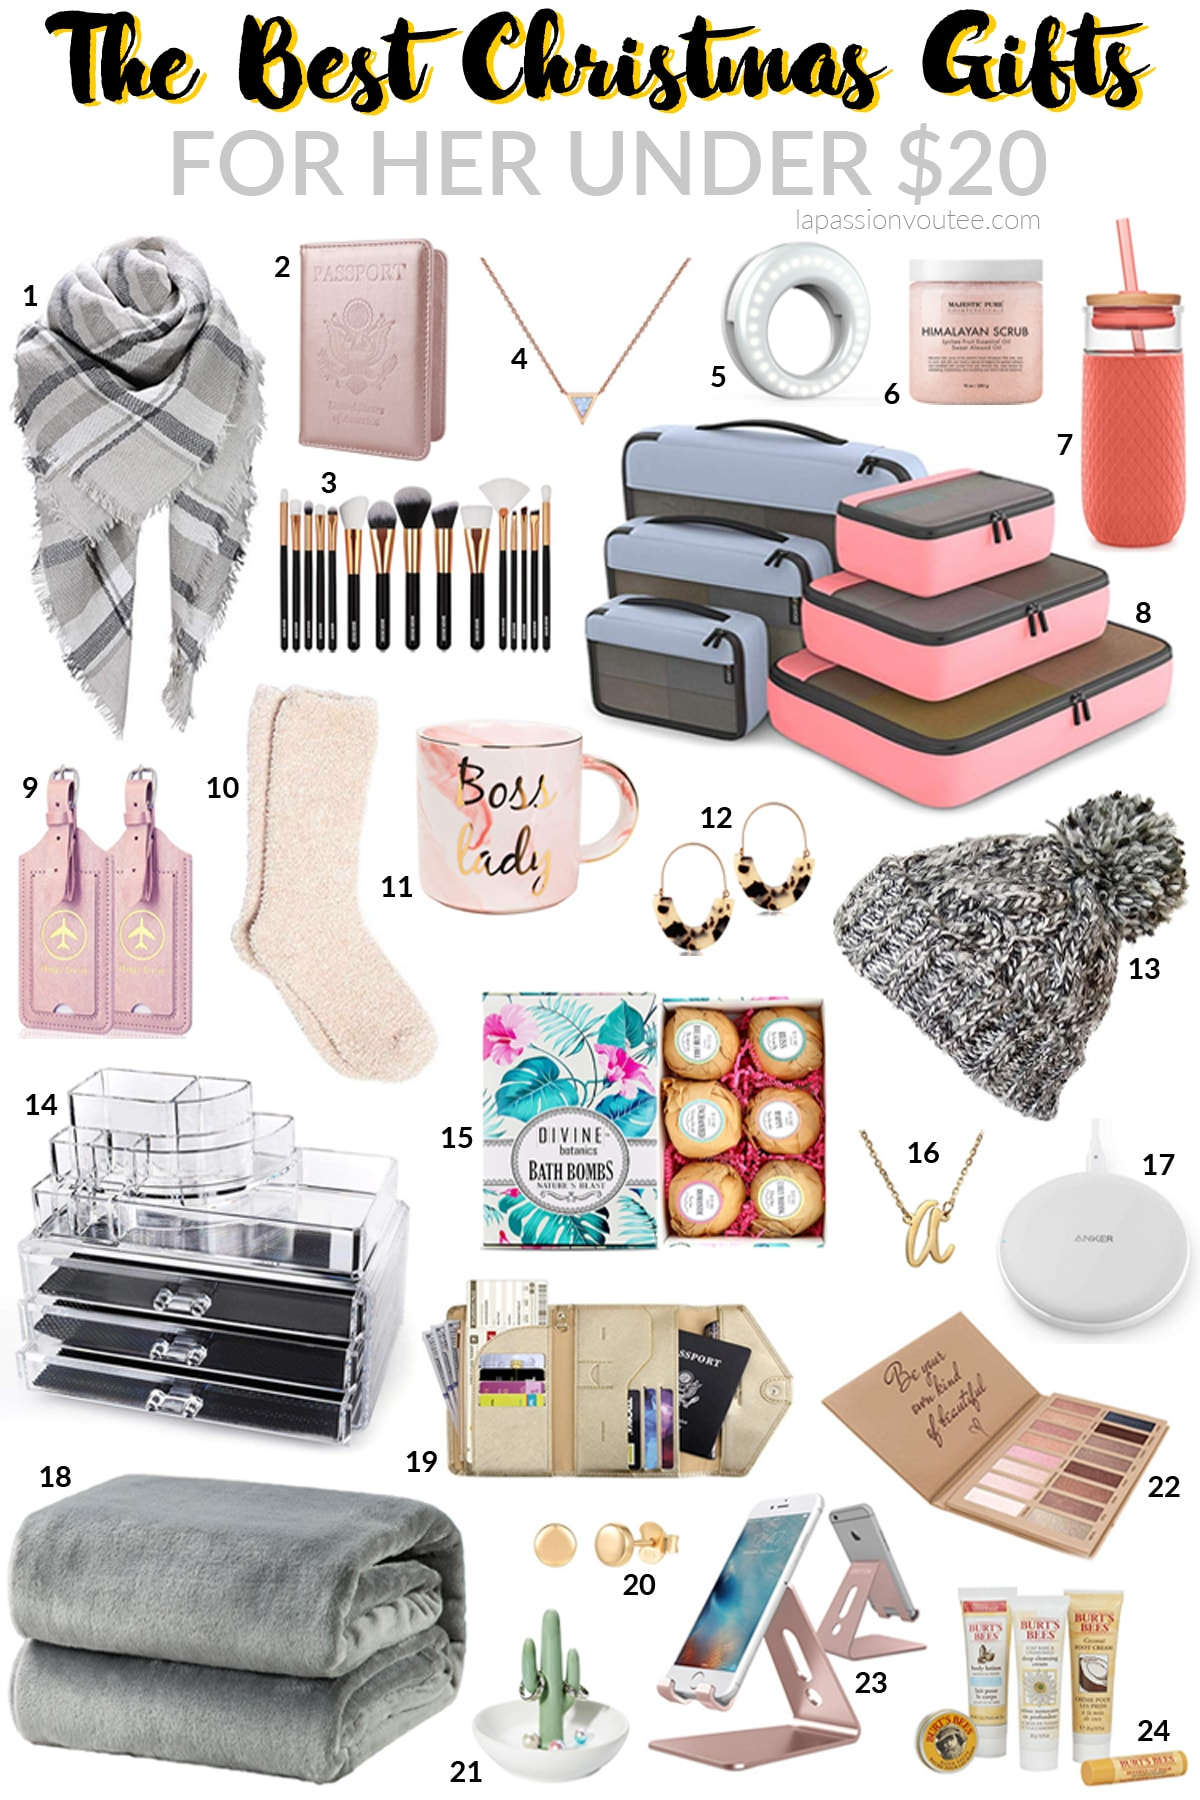 Wow friends and family with these best Christmas gifts for her under $20 that won't break the bank. #3, #8, #10, #23 are my absolute favorite. These presents are cute, practical and will be used for years to come. #giftsforherchristmas #giftsforwomen #giftsforwife #giftsformom